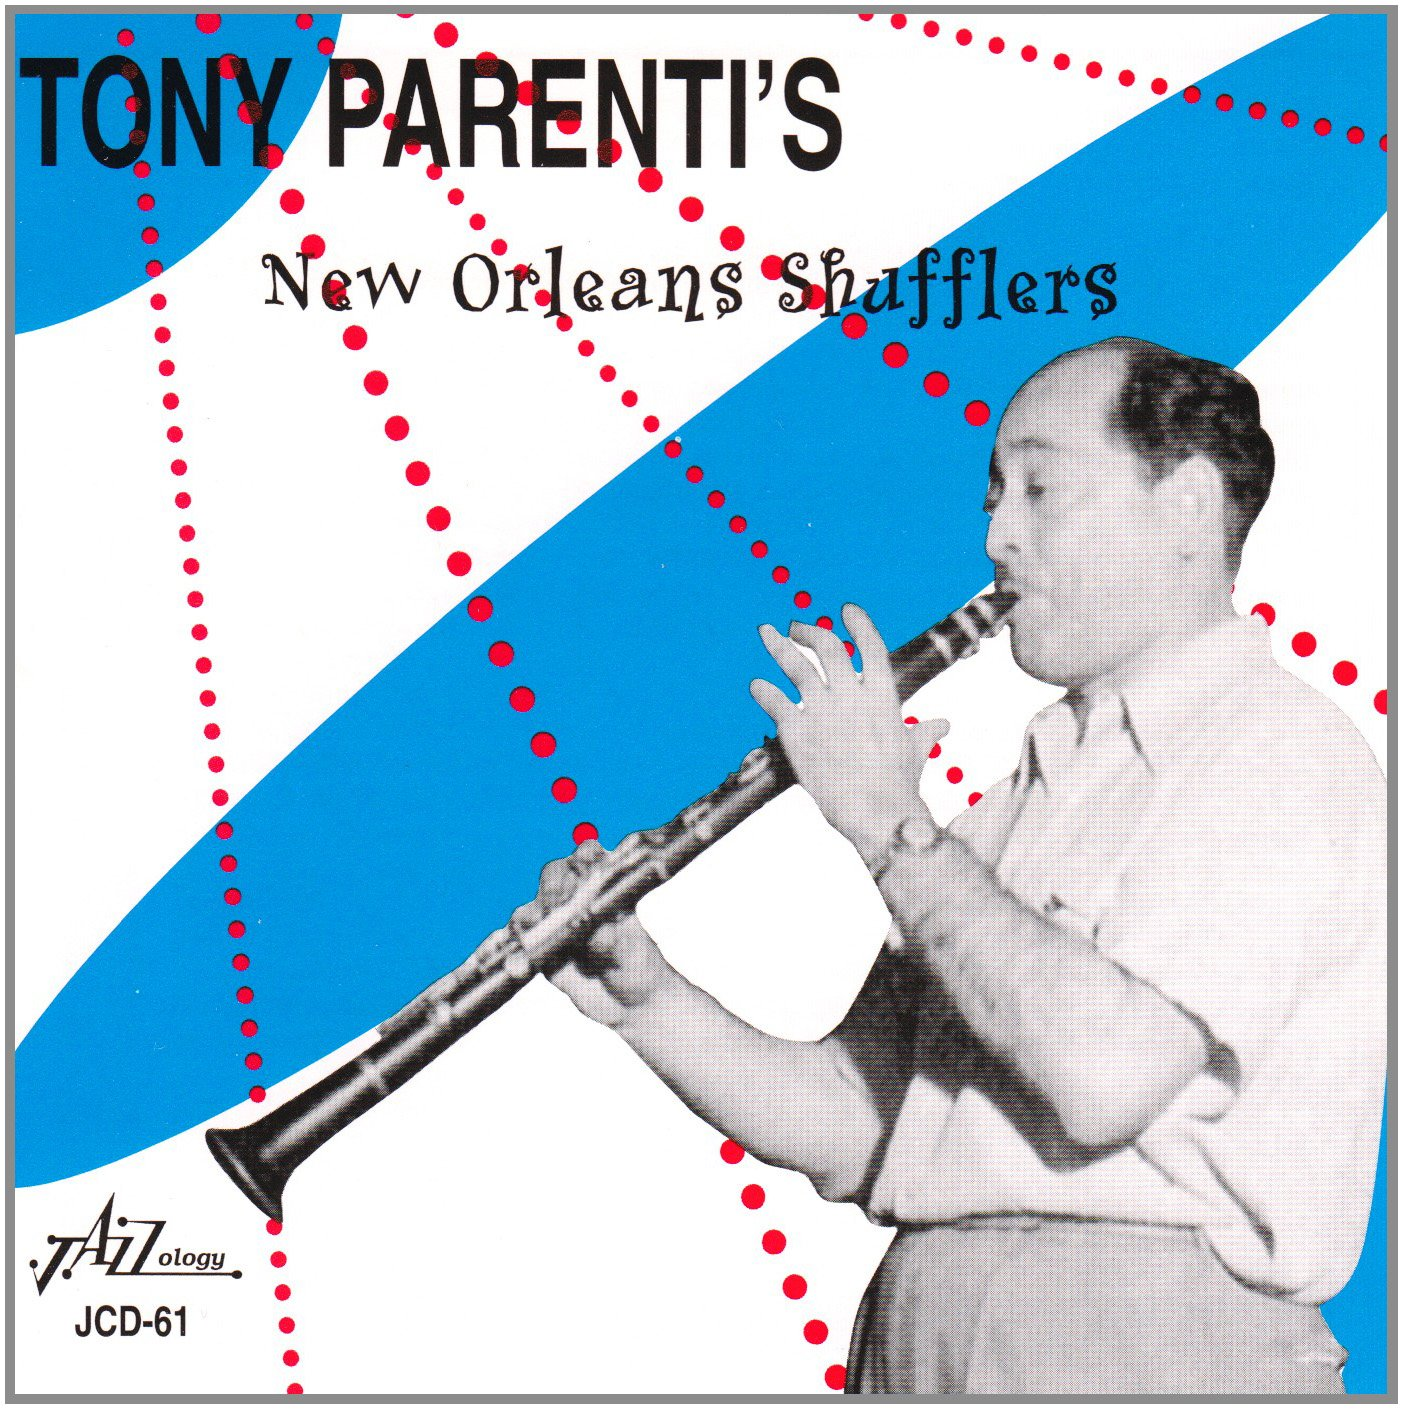 Tony Parenti's It wholesale is very popular New Orleans Shufflers